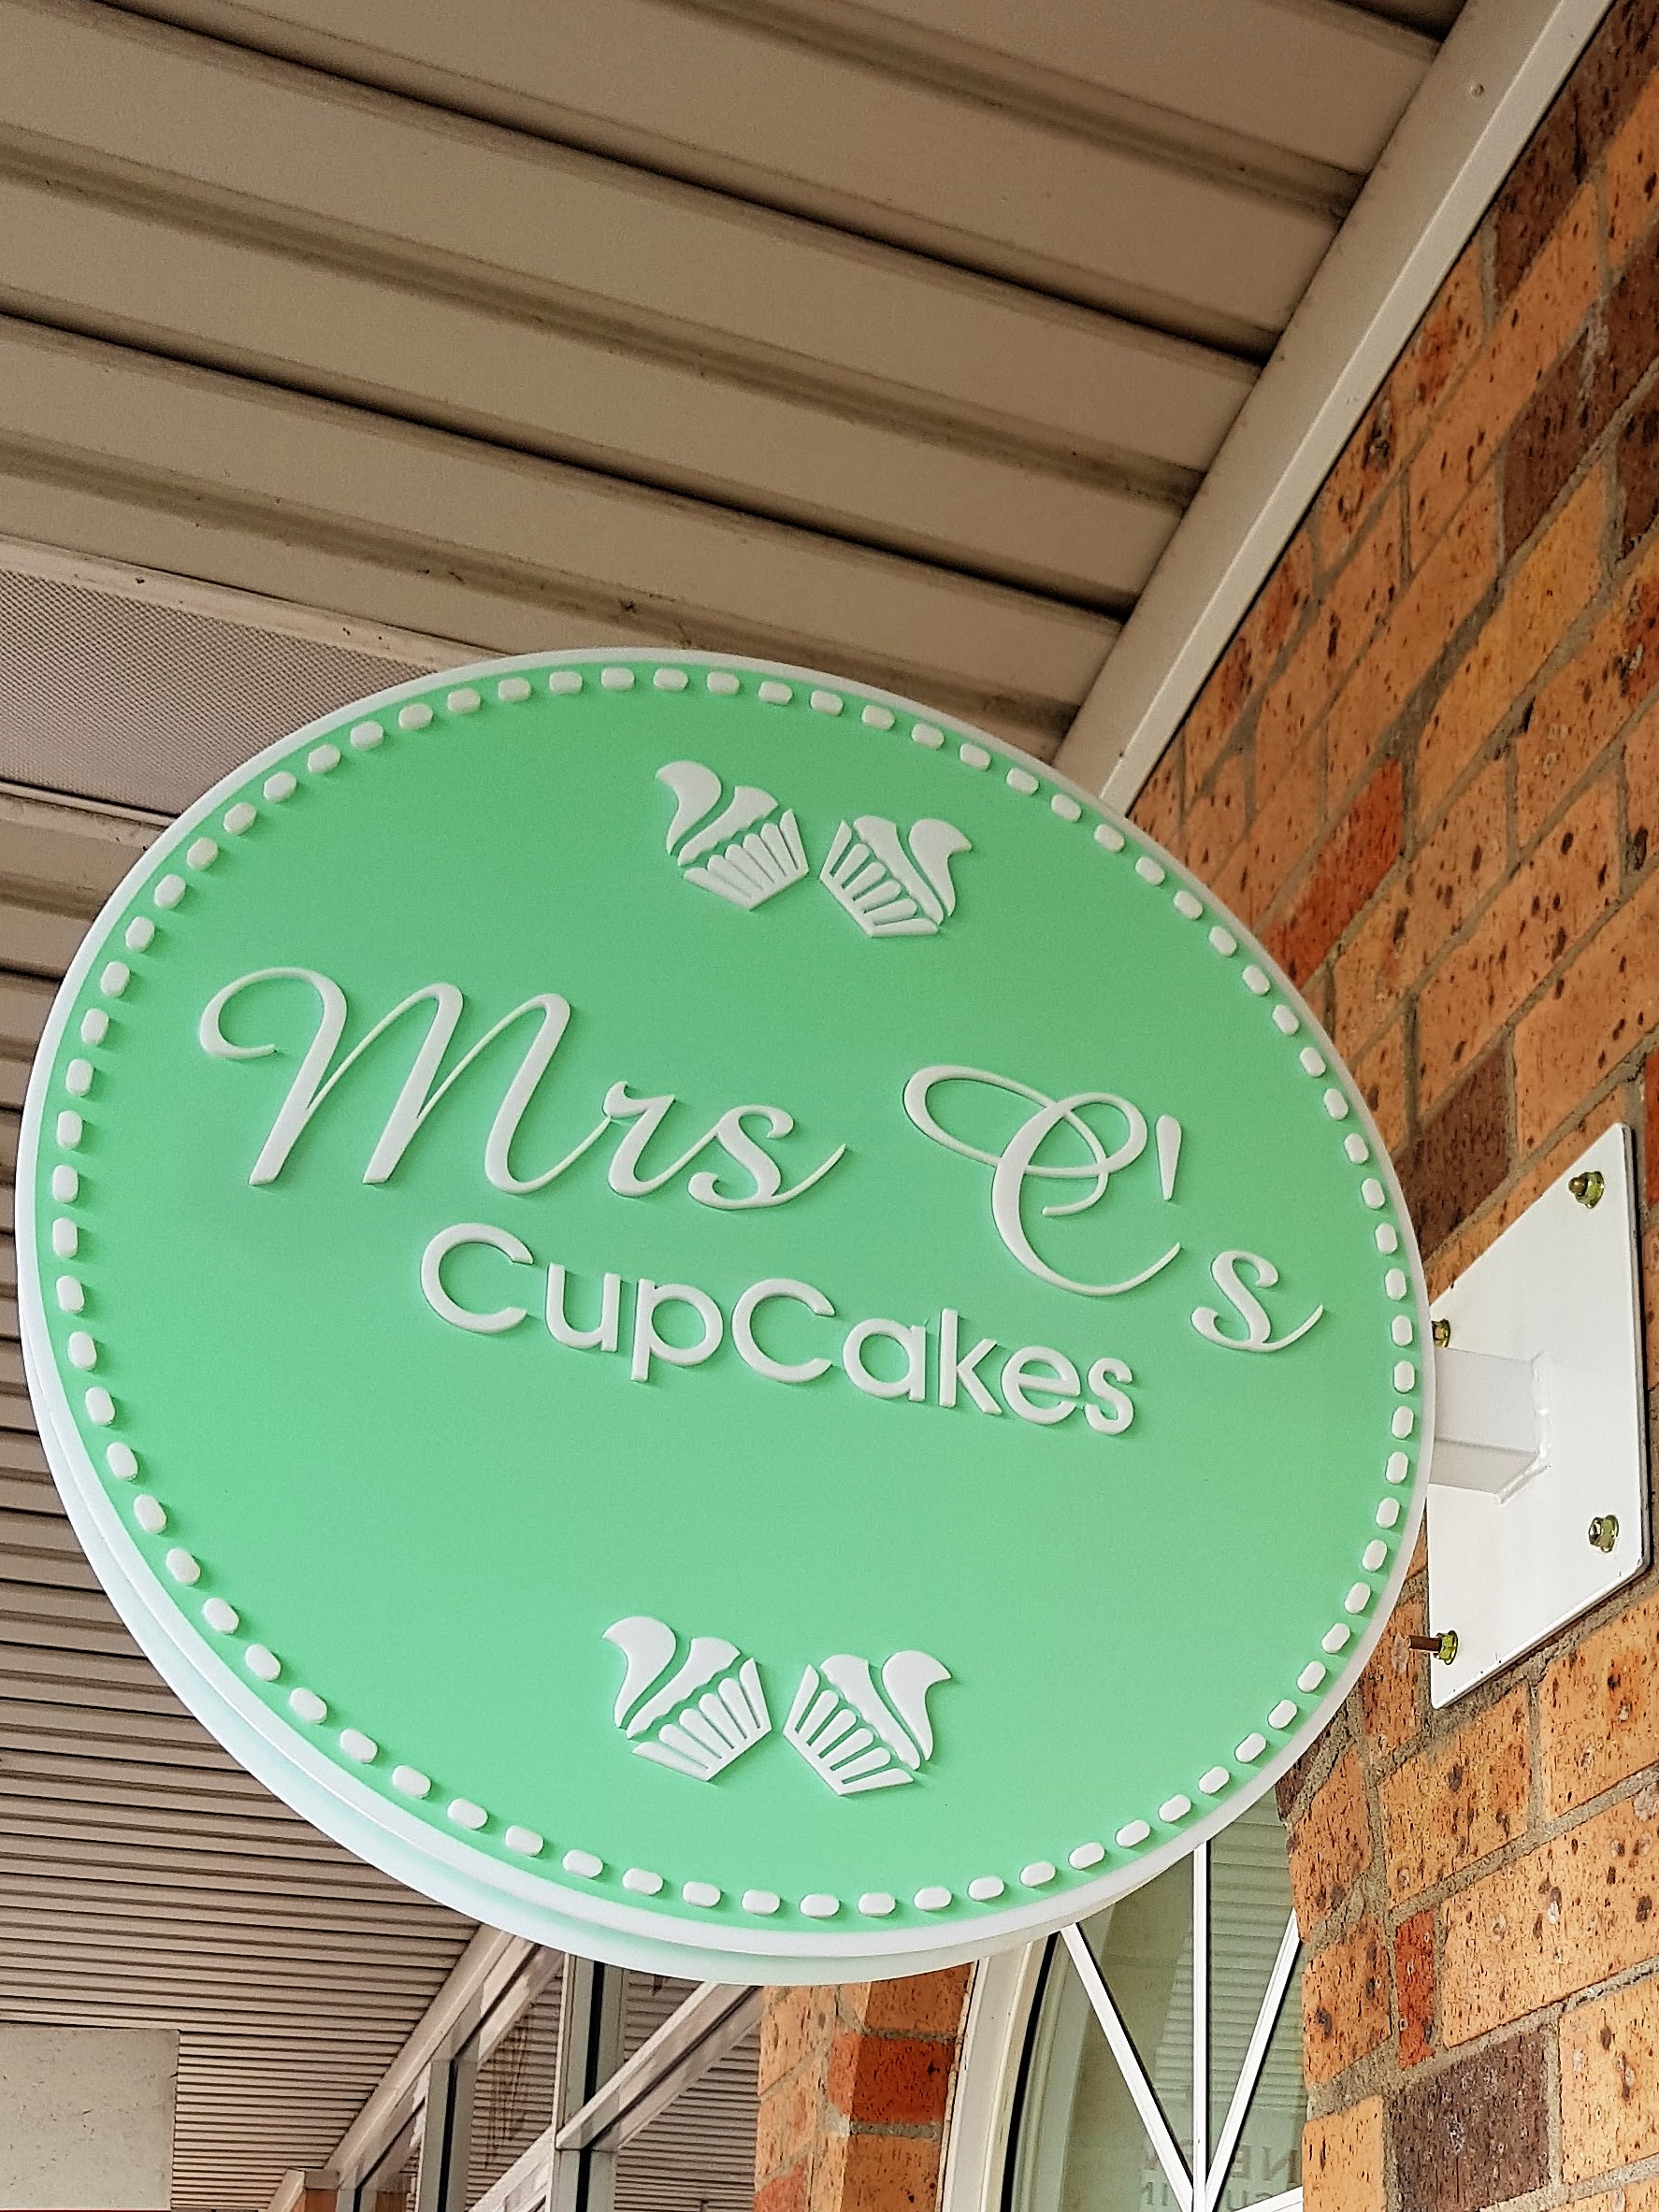 Mrs C's Cup Cakes